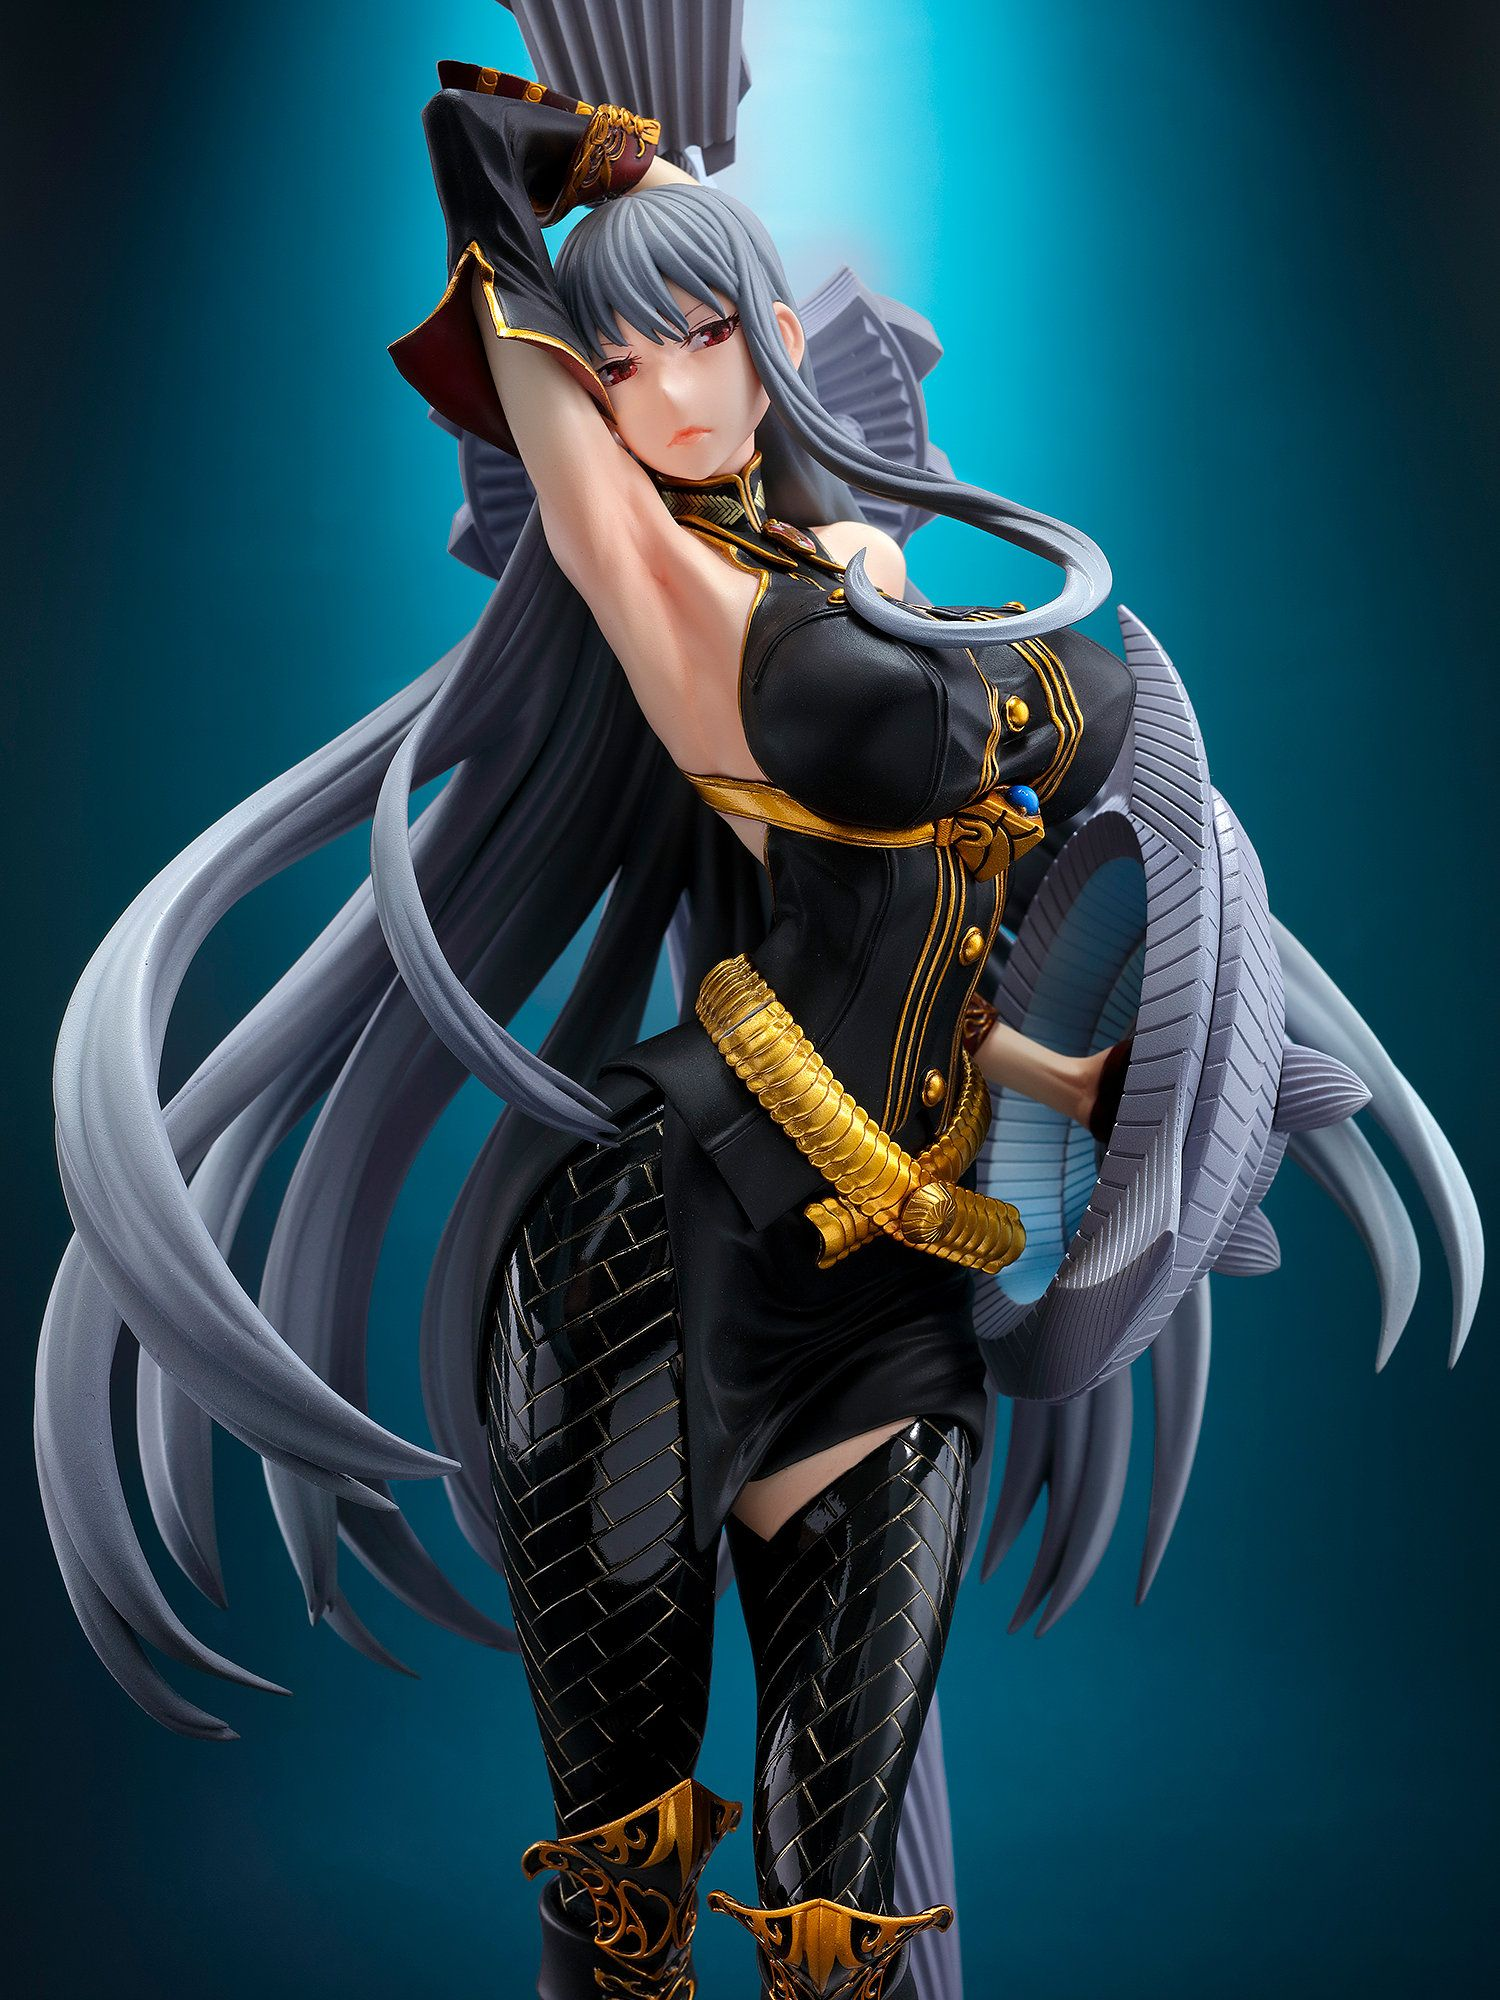 New Selvaria Figure from Valkyria Chronicles Looks